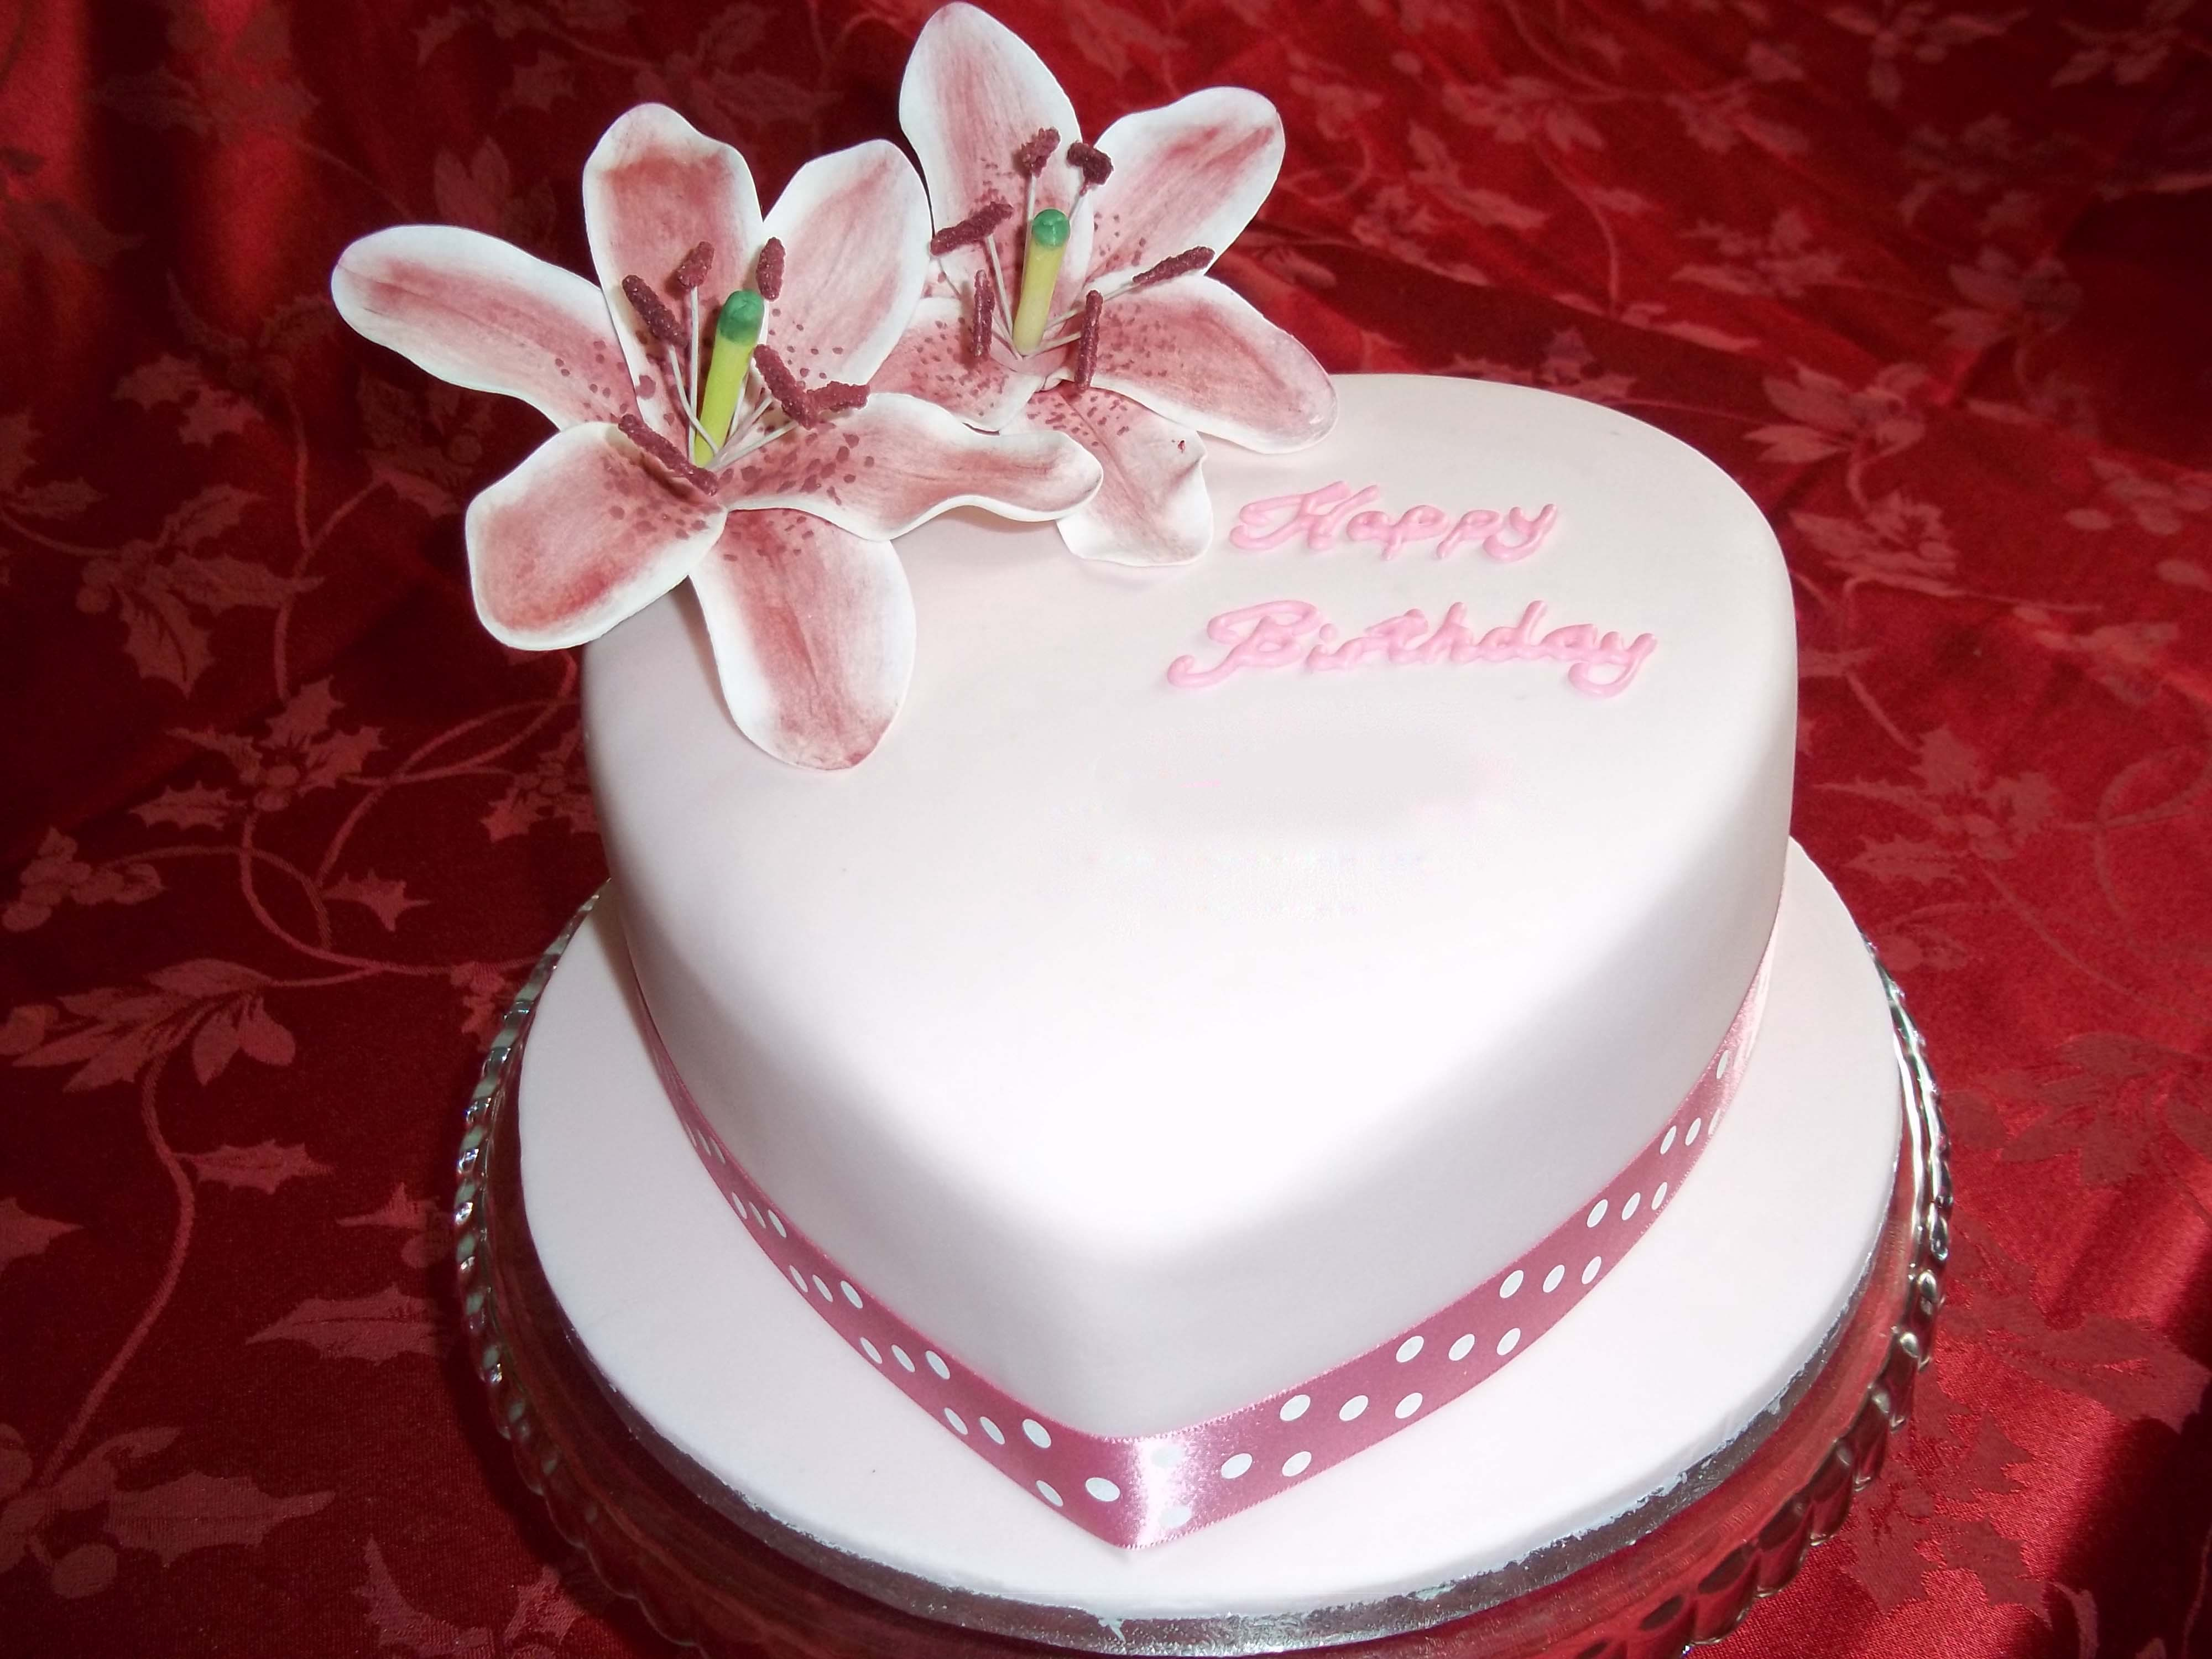 Birthday Cake Wallpapers Top Free Birthday Cake Backgrounds Wallpaperaccess